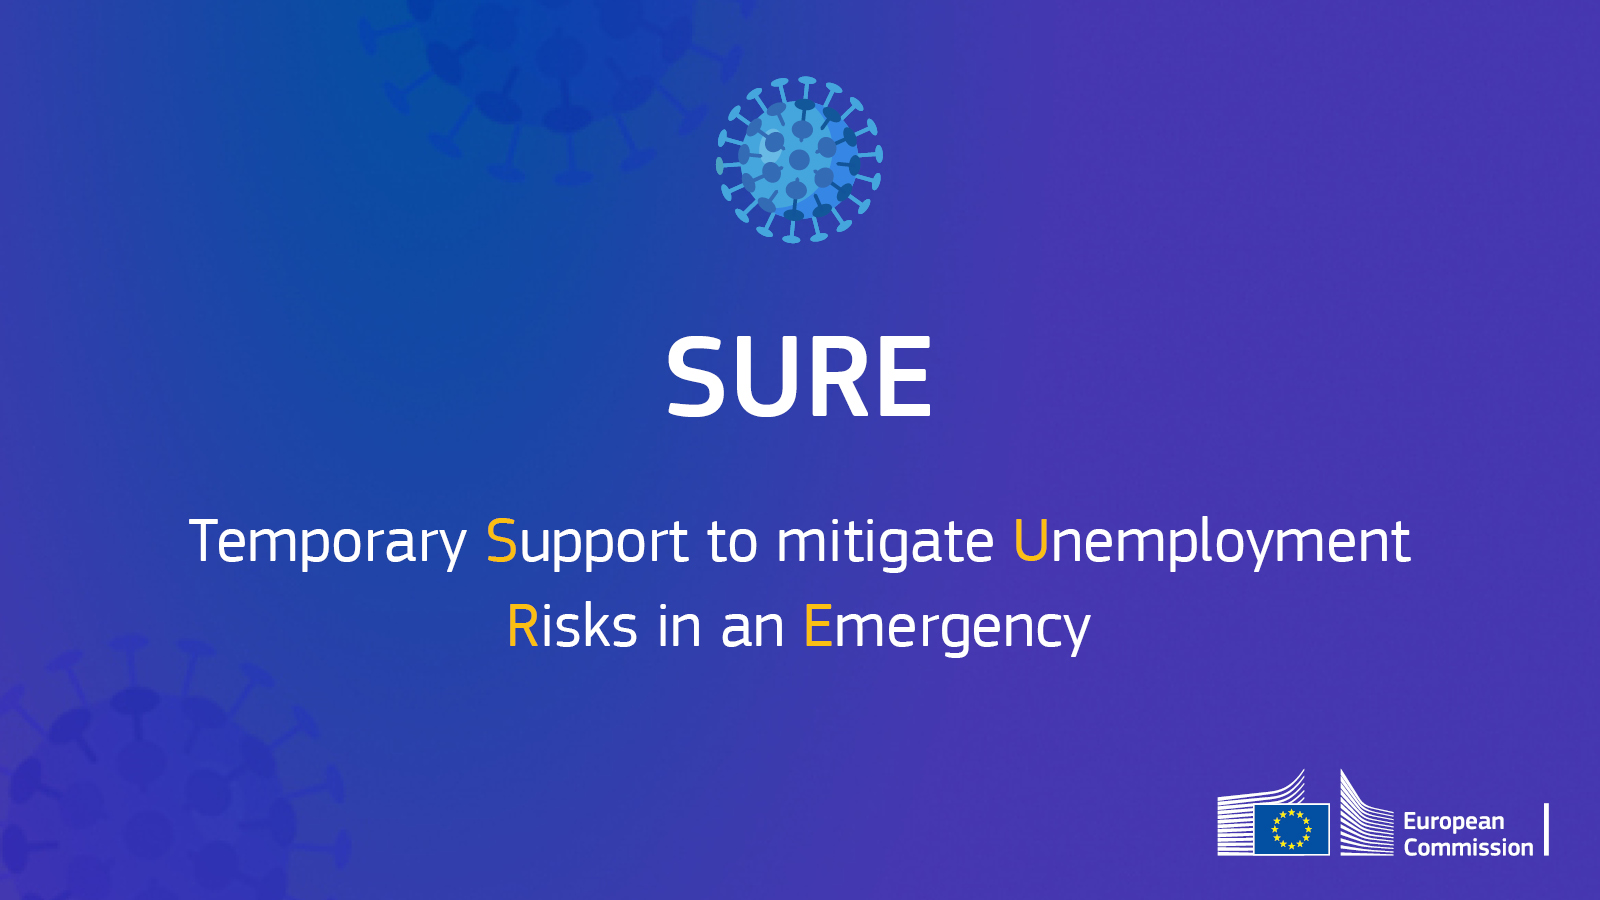 SURE | European Commission